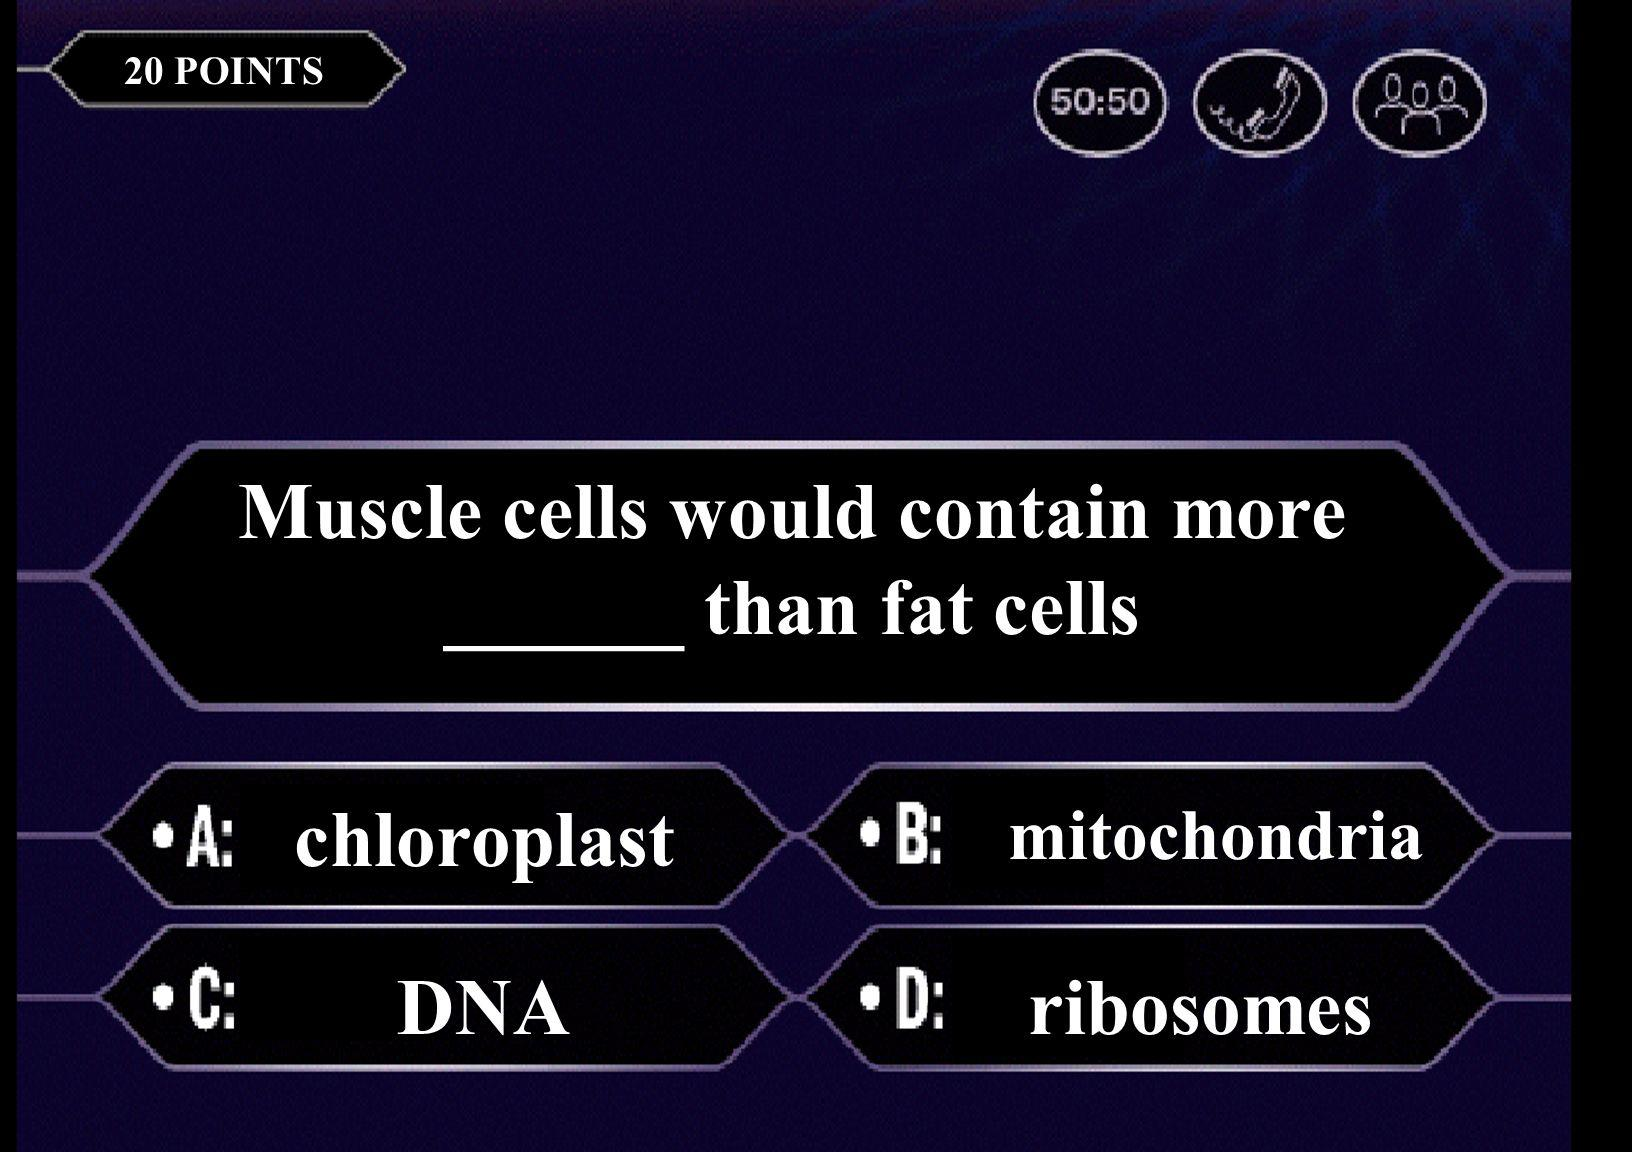 The basic unit of life is a(n) cell airtissue 20 POINTS Muscle cells would contain more ______ than fat cells chloroplast mitochondria DNAribosomes